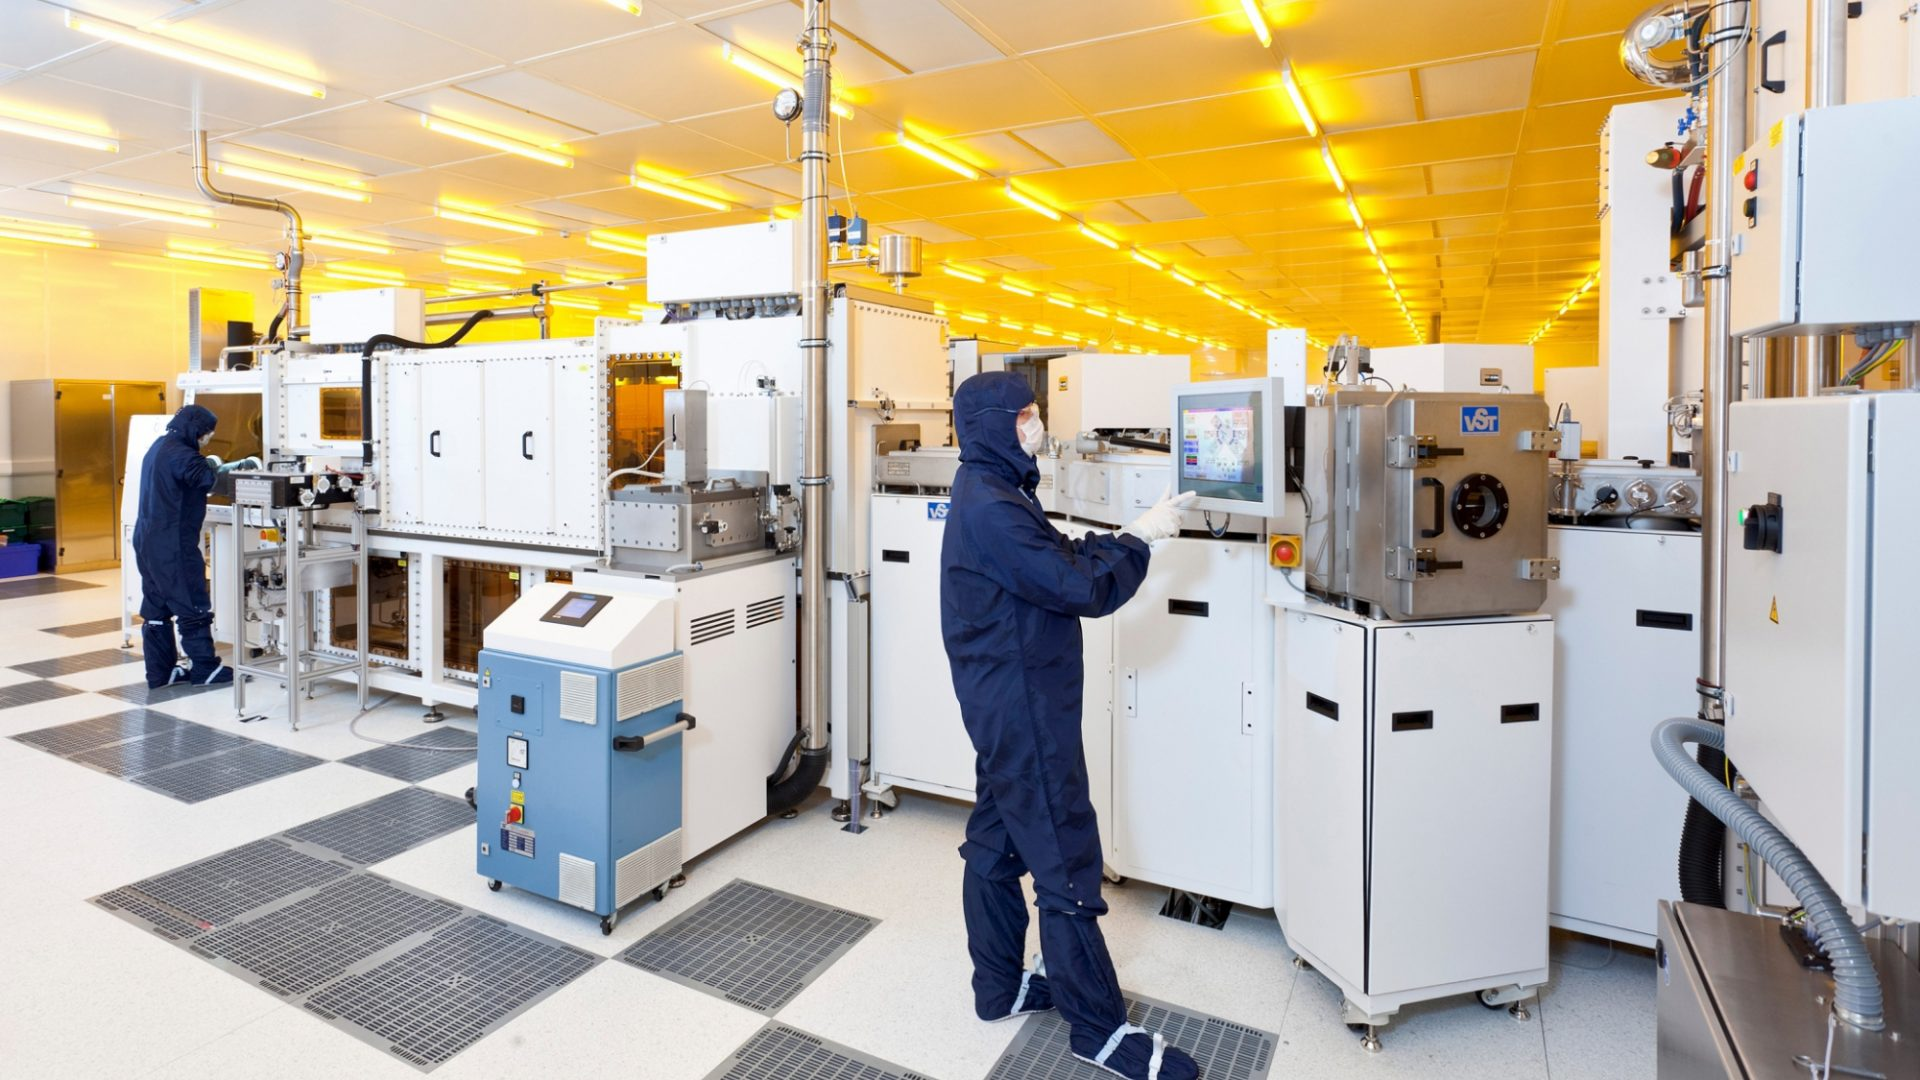 A photo of CPI scientists using cutting-edge electrical equipment in a cleanroom